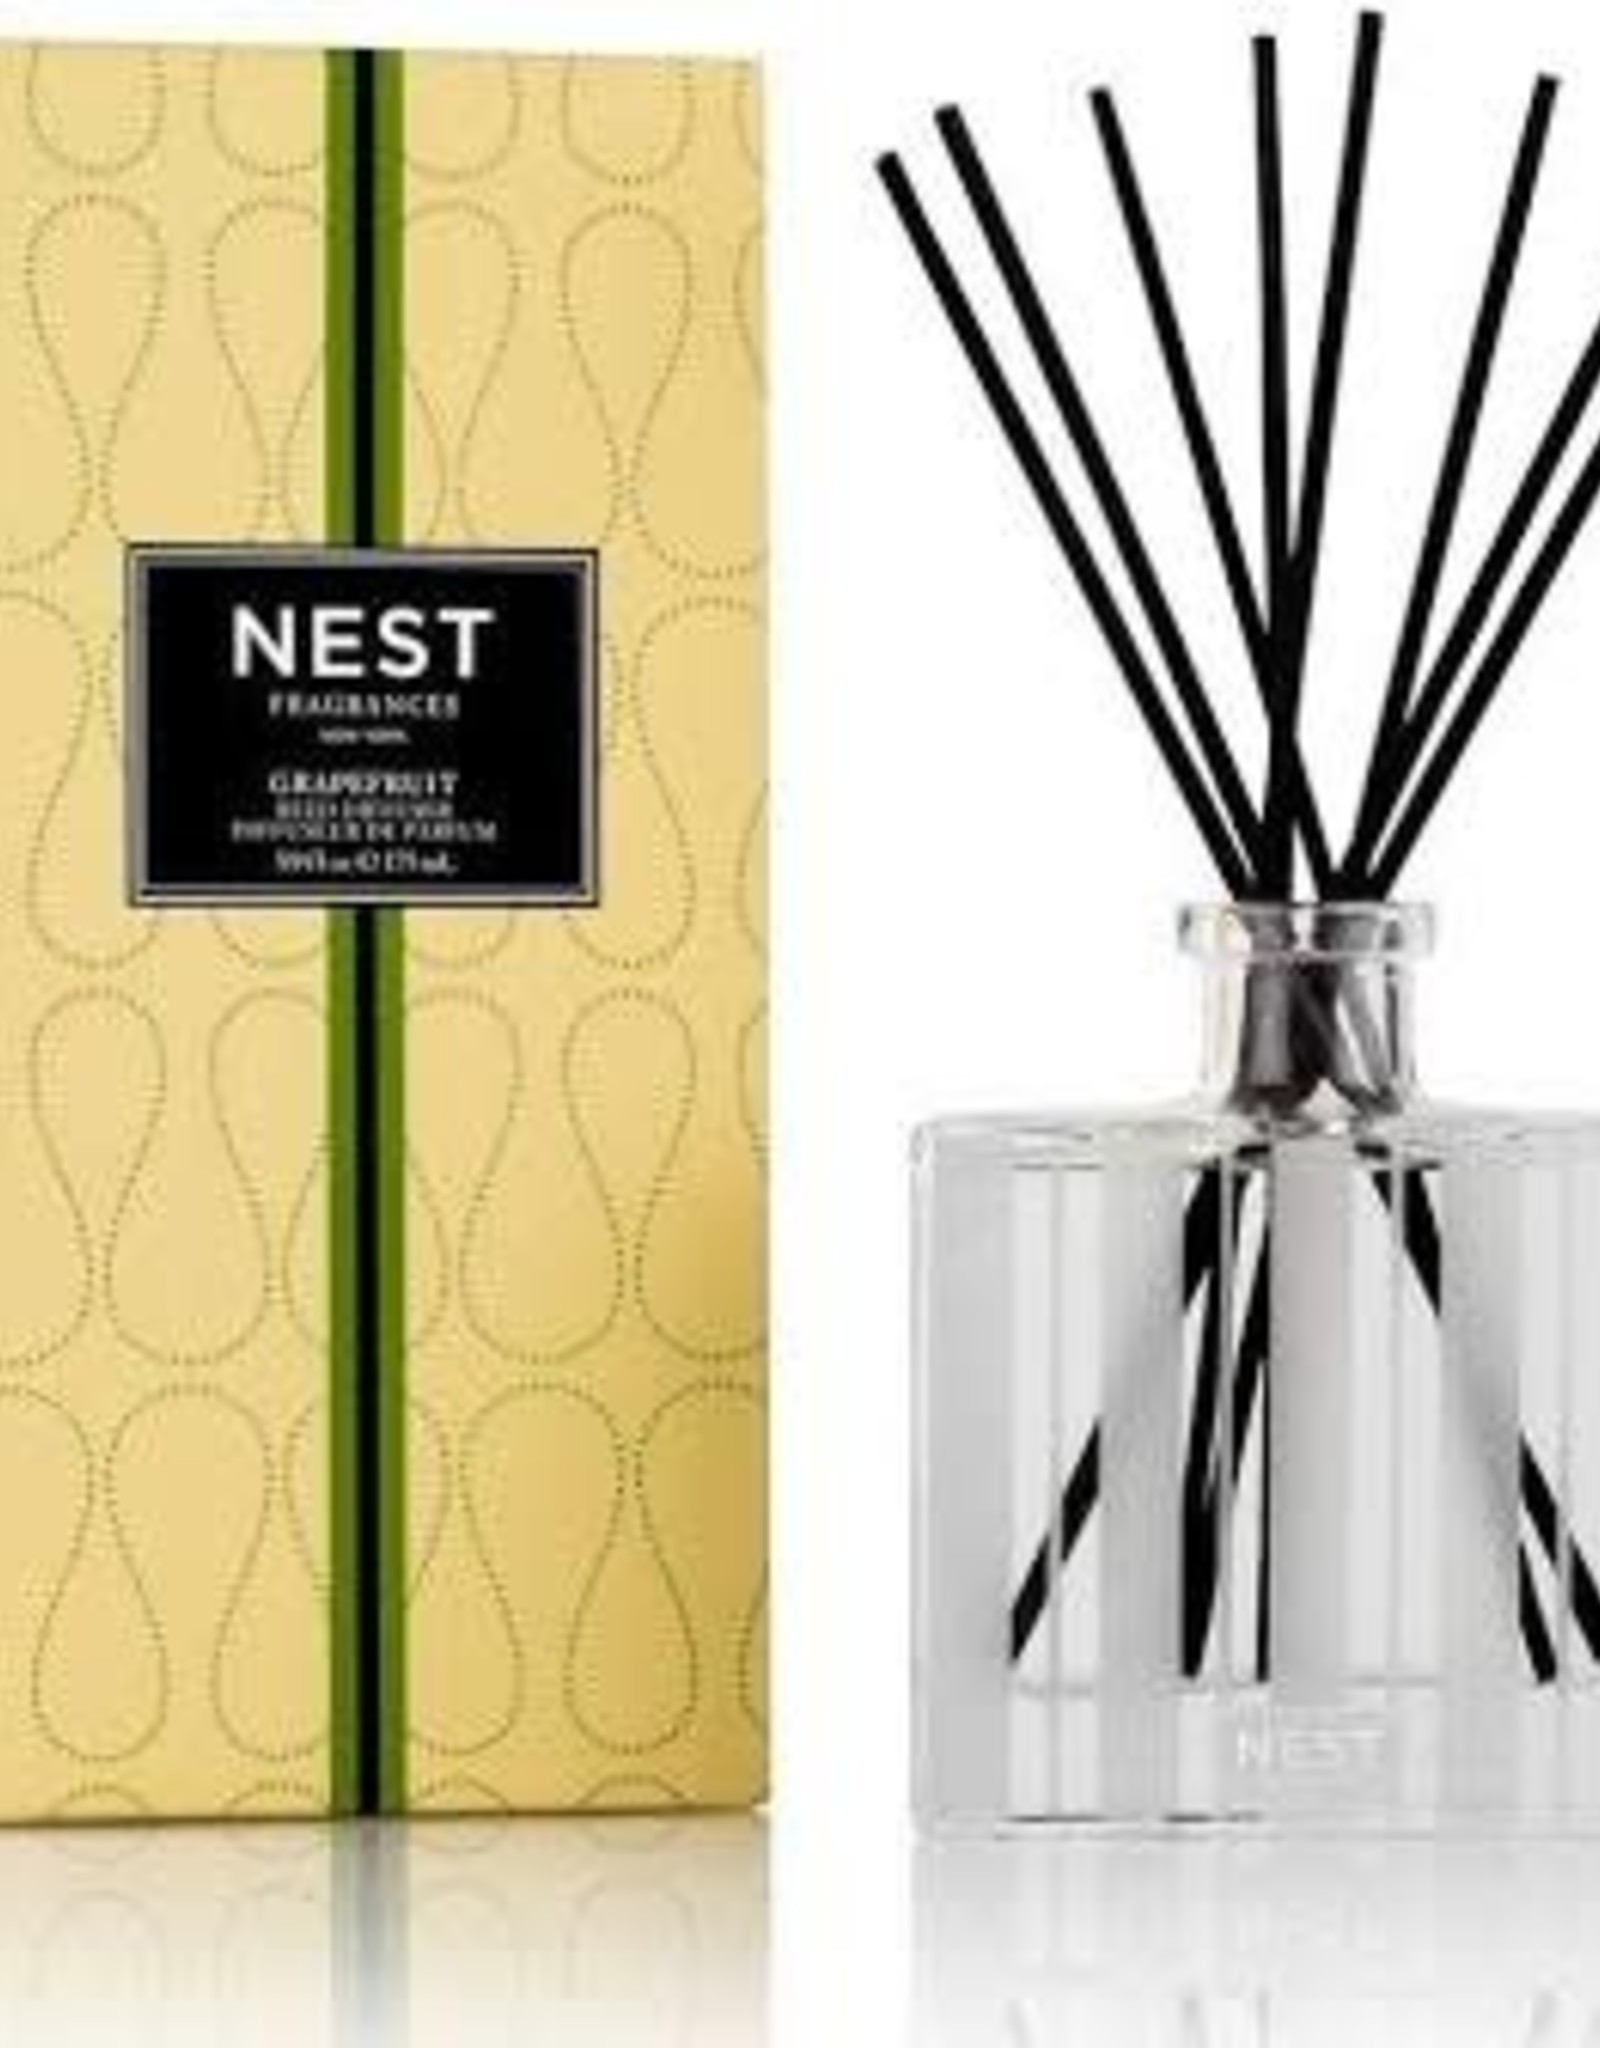 Nest Candle Nest Grapefruit